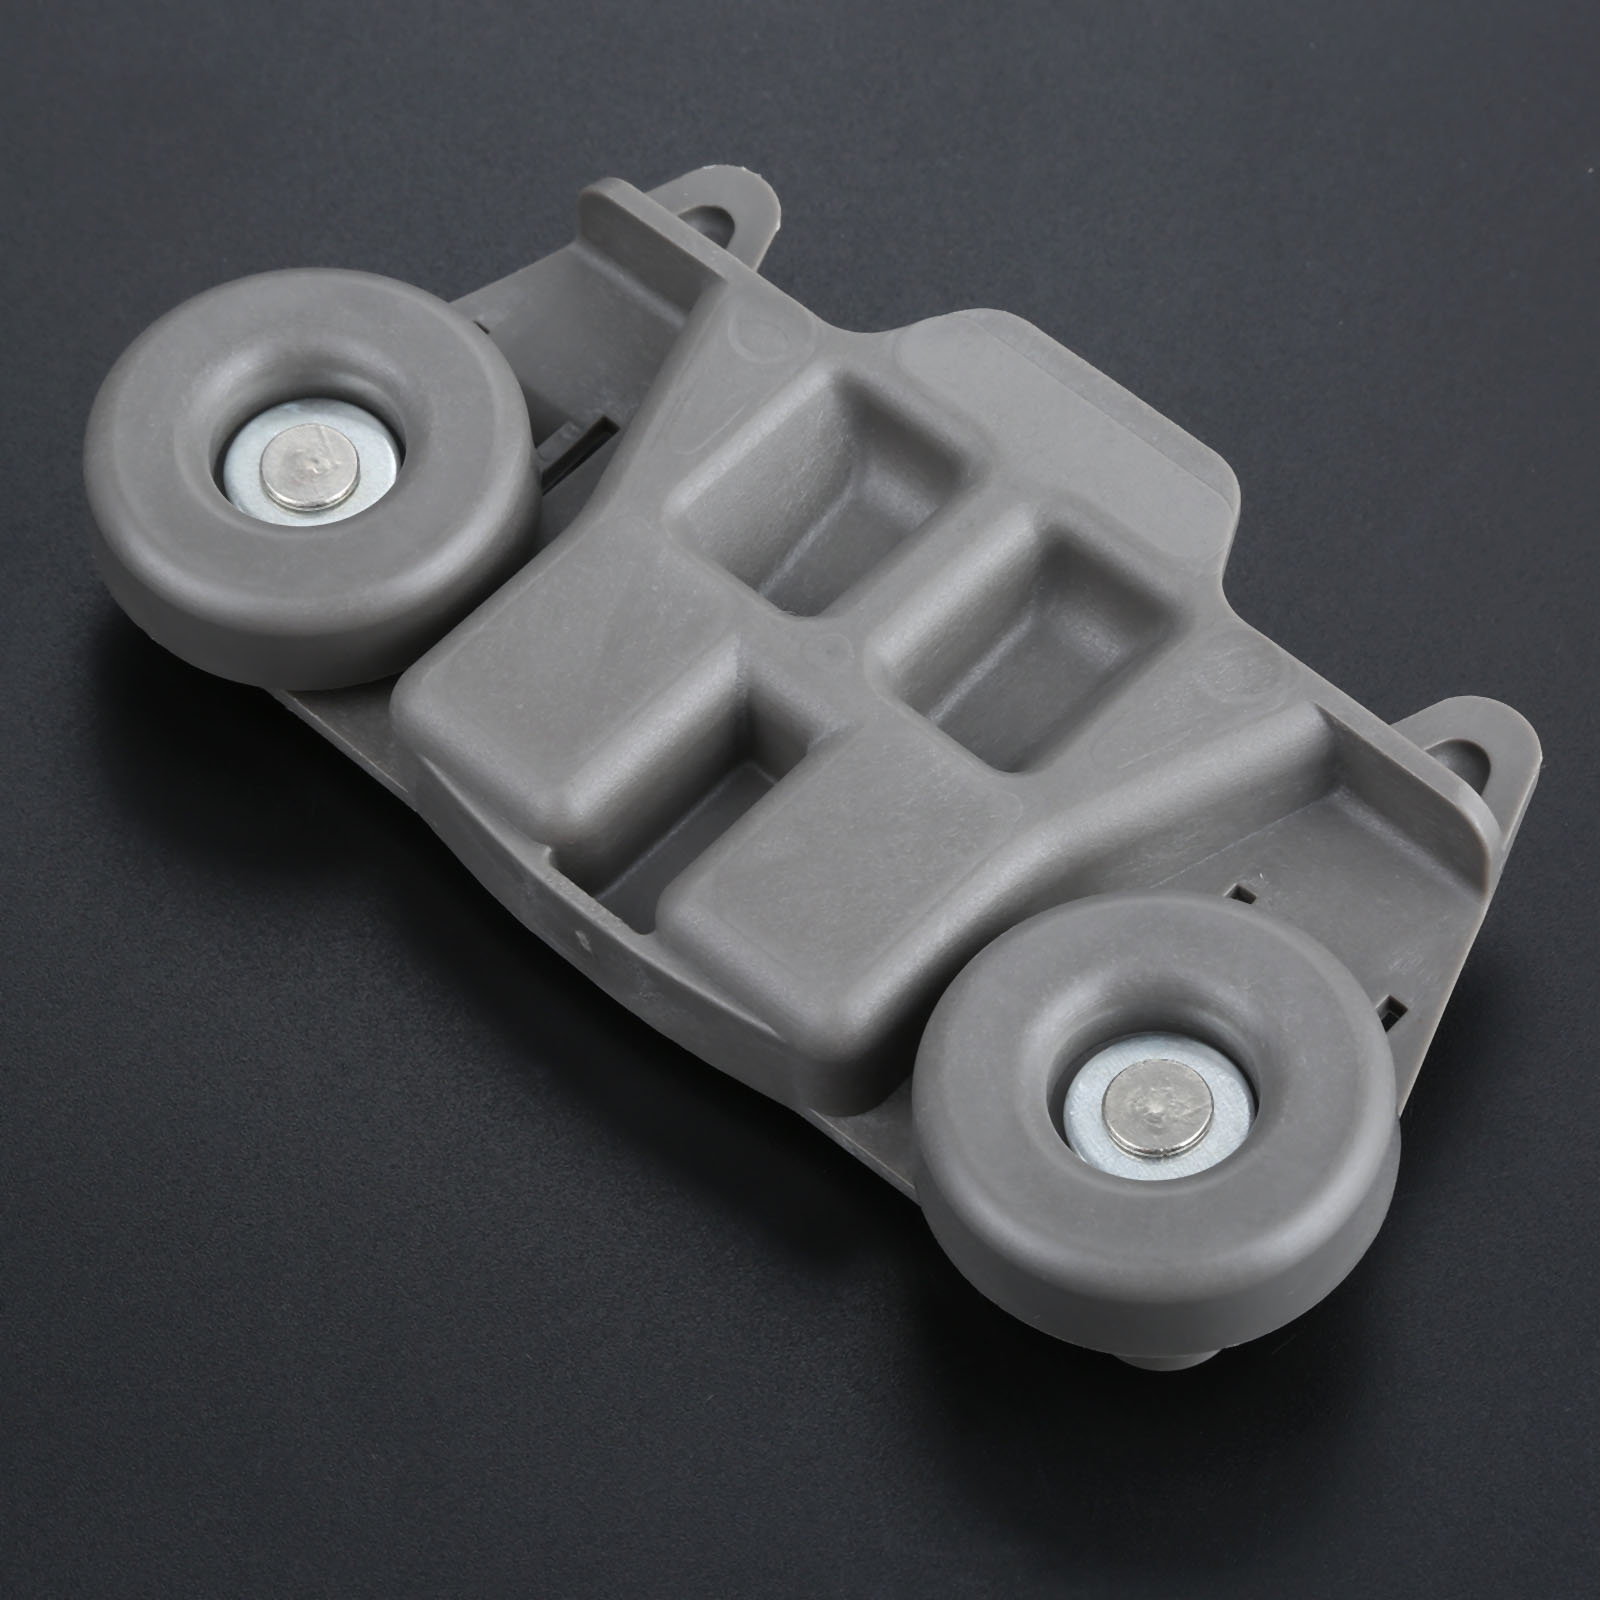 W10195416V W10195416 Dishwasher Wheel Assembly AP5983730 W10195416V PS11722152 in Tool Parts from Tools